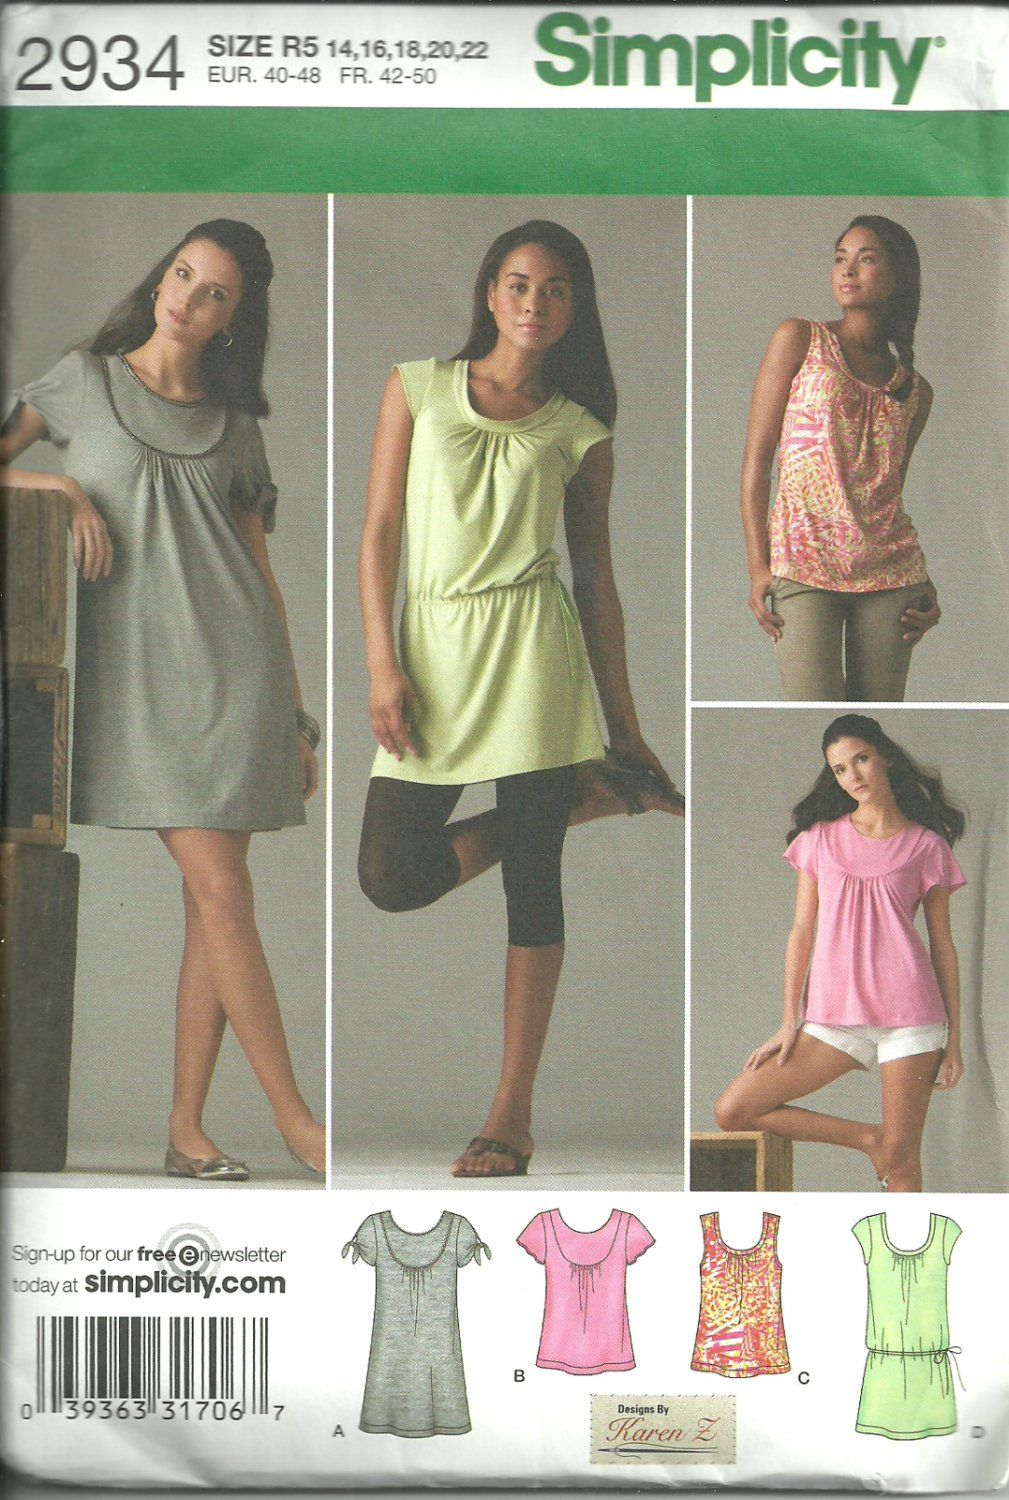 Simplicity Patterns Sale Awesome Inspiration Ideas